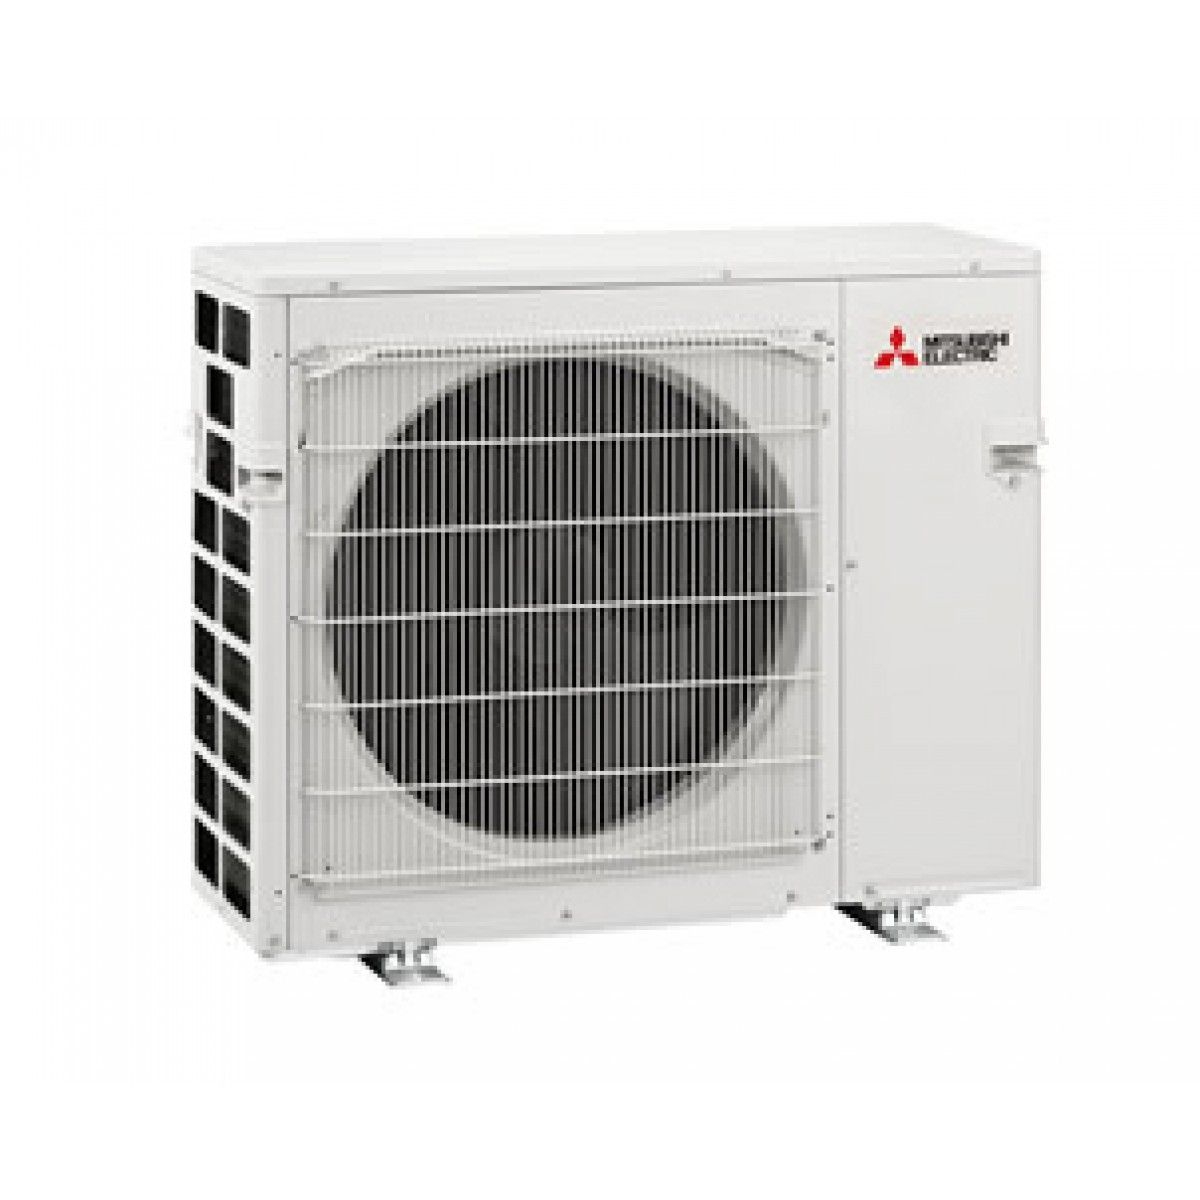 air conditioner cage pj trailers wiring diagram mxz-4a36na split conditioning and heating 36k btu - 4 indoor units